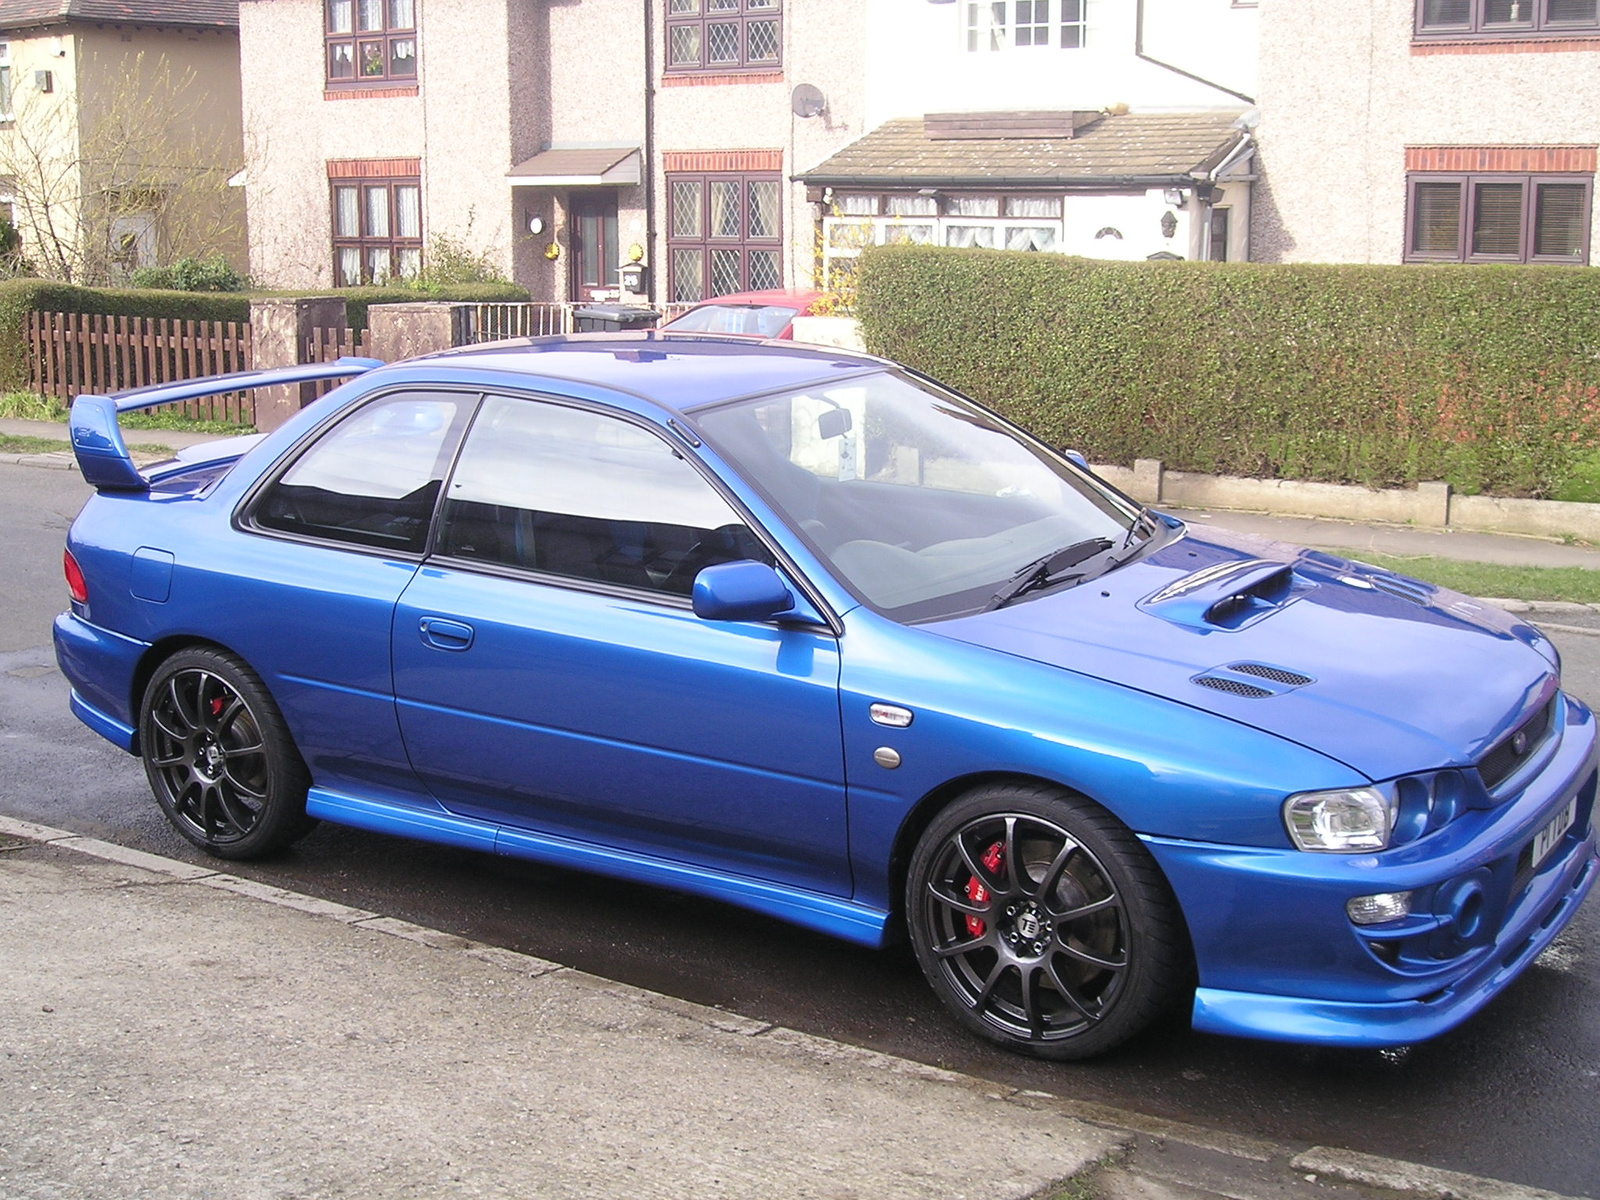 2004 subaru impreza wrx sti with 2000 Subaru Impreza Pictures C3481 Pi13530348 on The 5 Greatest Rally Cars Of All Time besides First Drive 2018 Subaru Wrx And Wrx Sti also 04 STi 6904643 additionally Gaming Wallpapers likewise 2000 Subaru Impreza Pictures C3481 pi13530348.